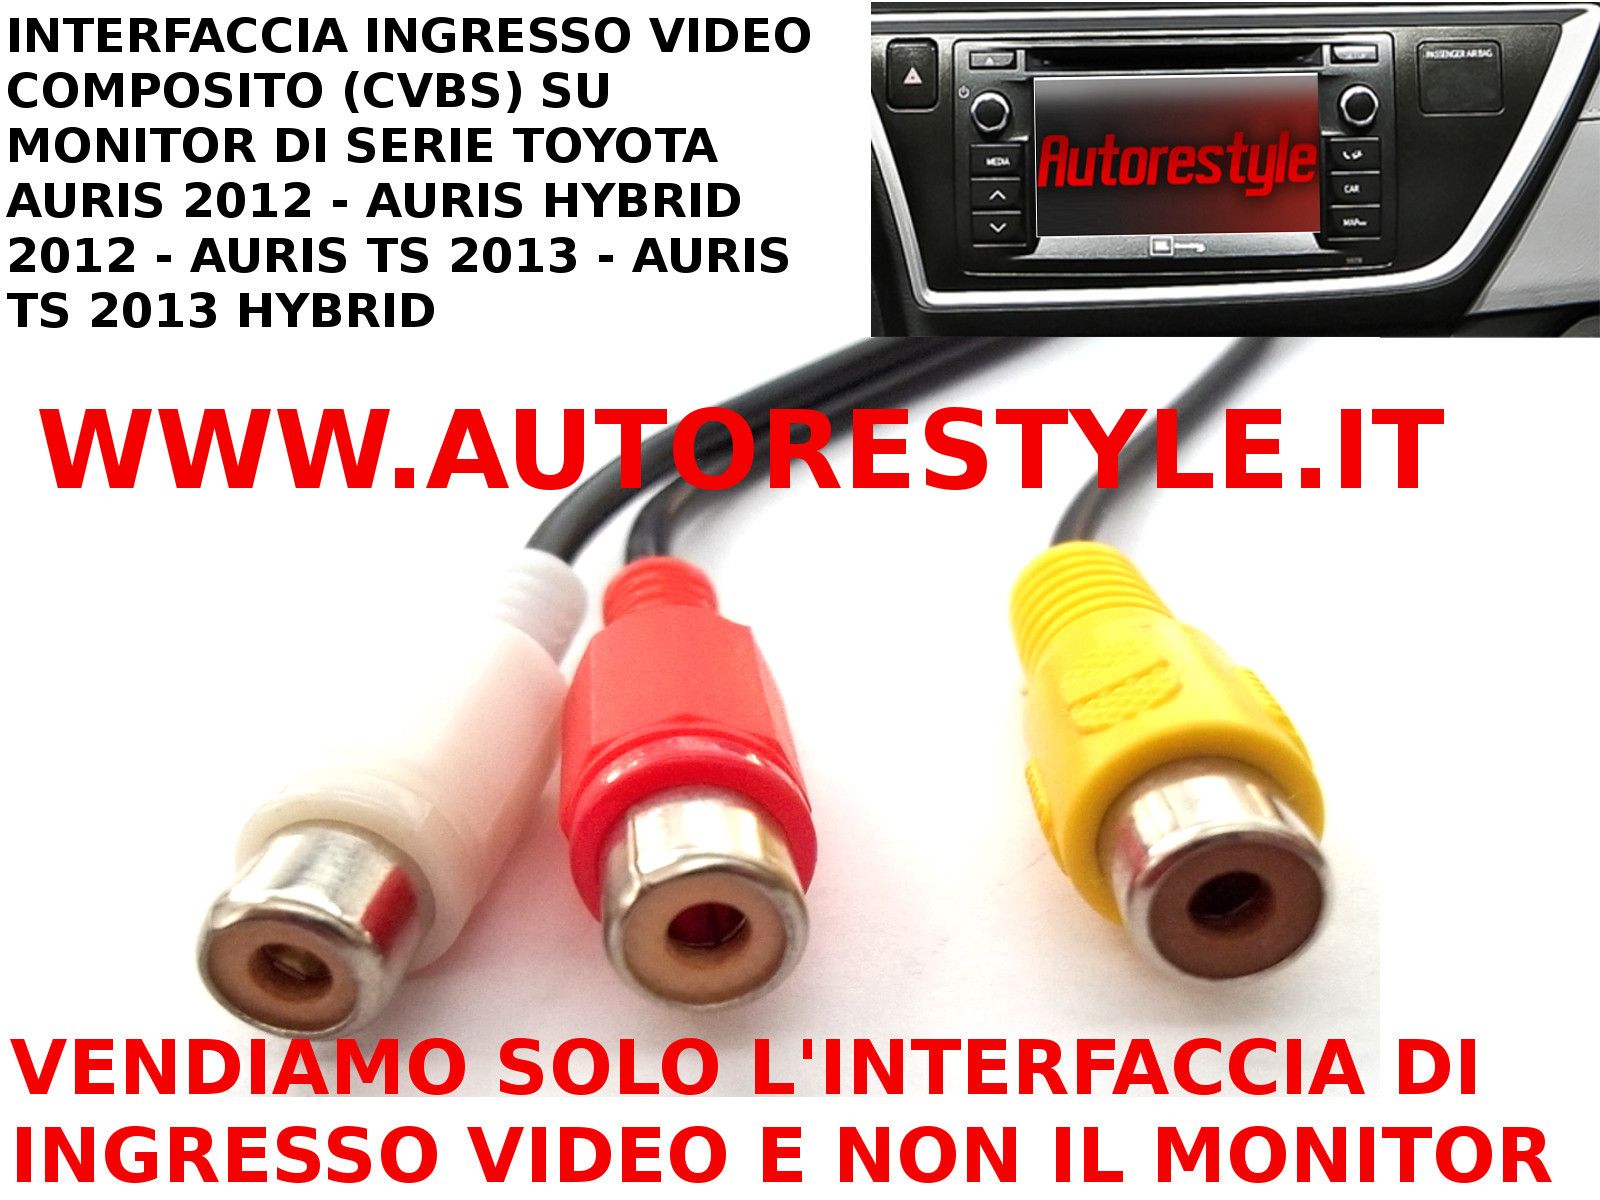 INTERFACCIA DI INGRESSO AUDIO VIDEO COMPOSITO RCA (CVBS ) SU MONITOR DI SERIE E TOUCH&GO TOYOTA AURIS 2012 AURIS TS 2013 HYBRID